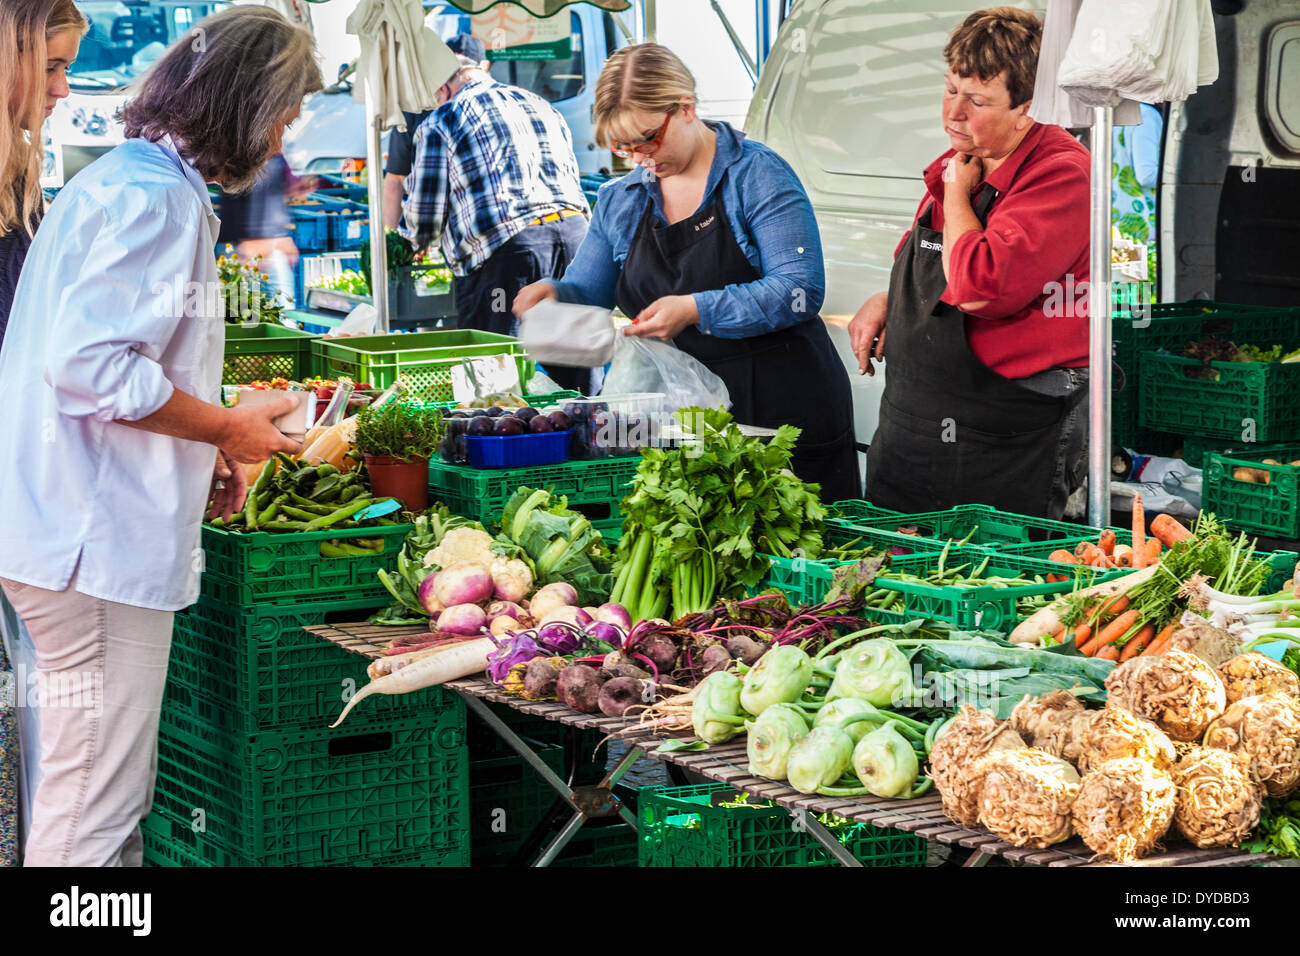 Buying and selling fresh produce from a vegetable stall at the market in the Place Guillaume II in Luxembourg. - Stock Image